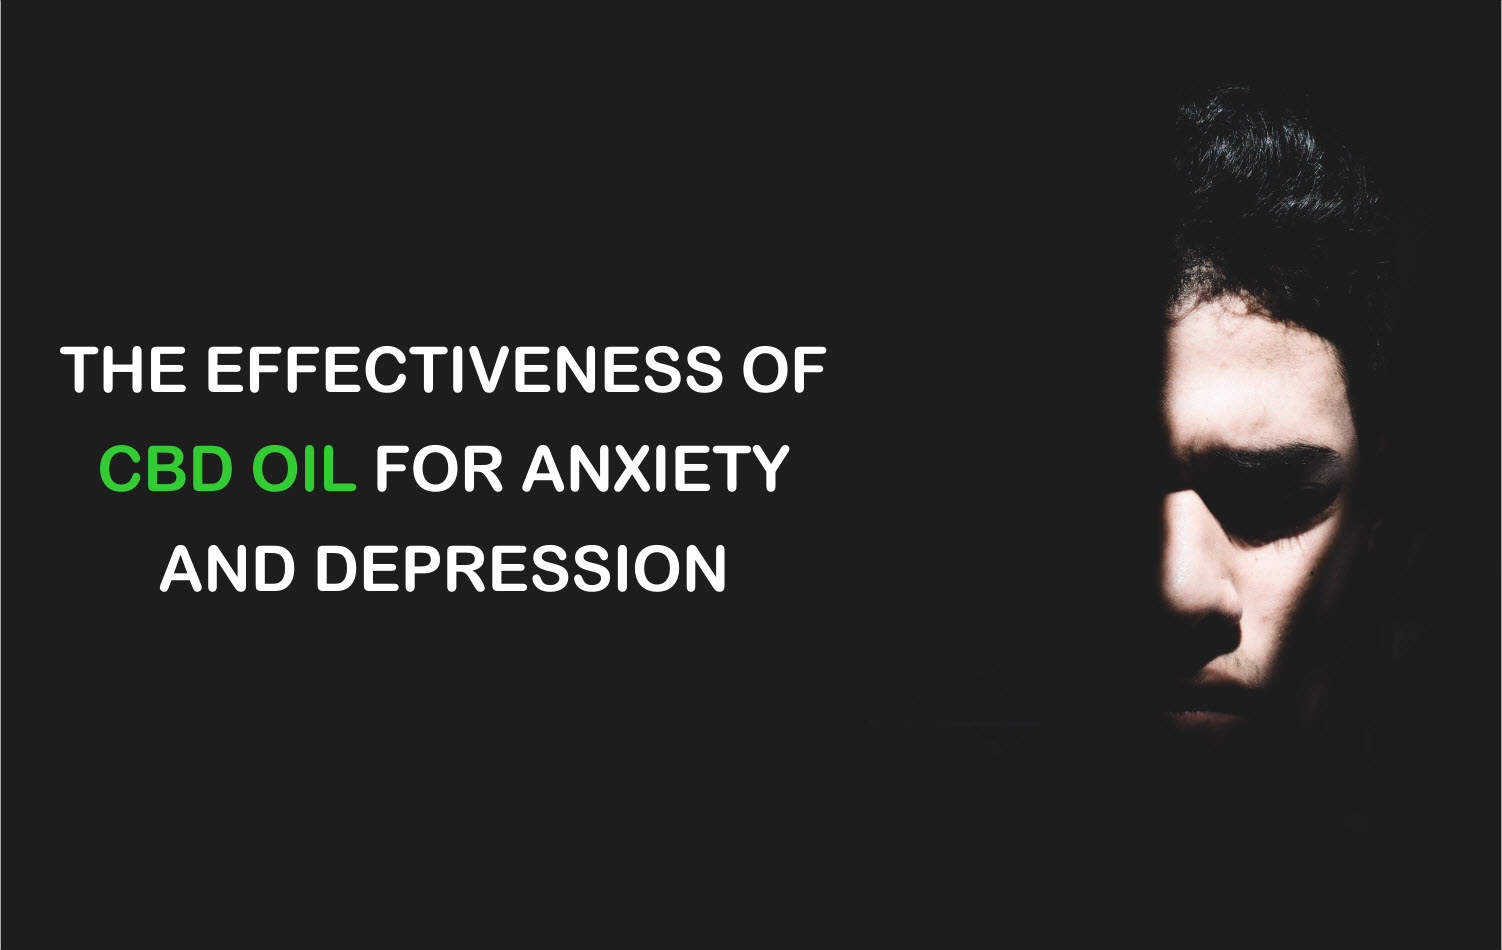 The Effectiveness of CBD Oil for Anxiety and Depression